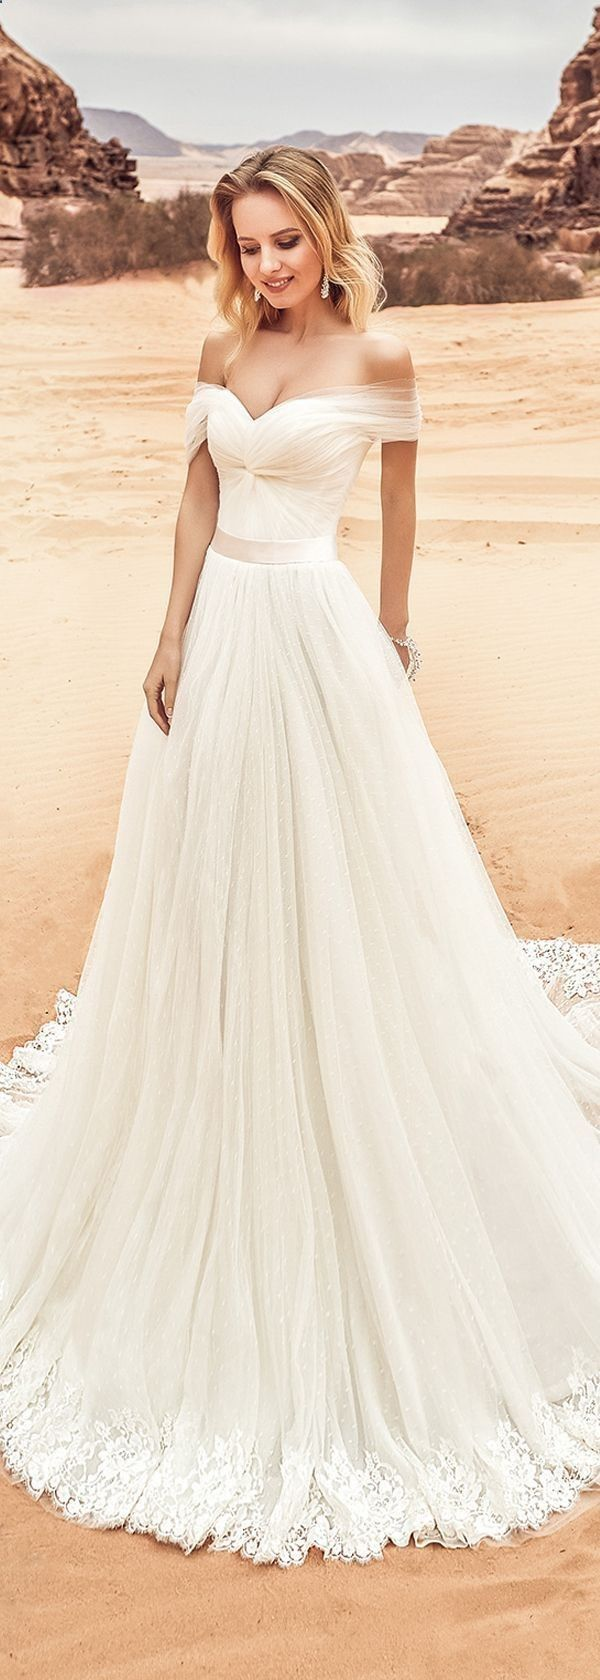 28 Elegant Off-the-Shoulder Wedding Dresses